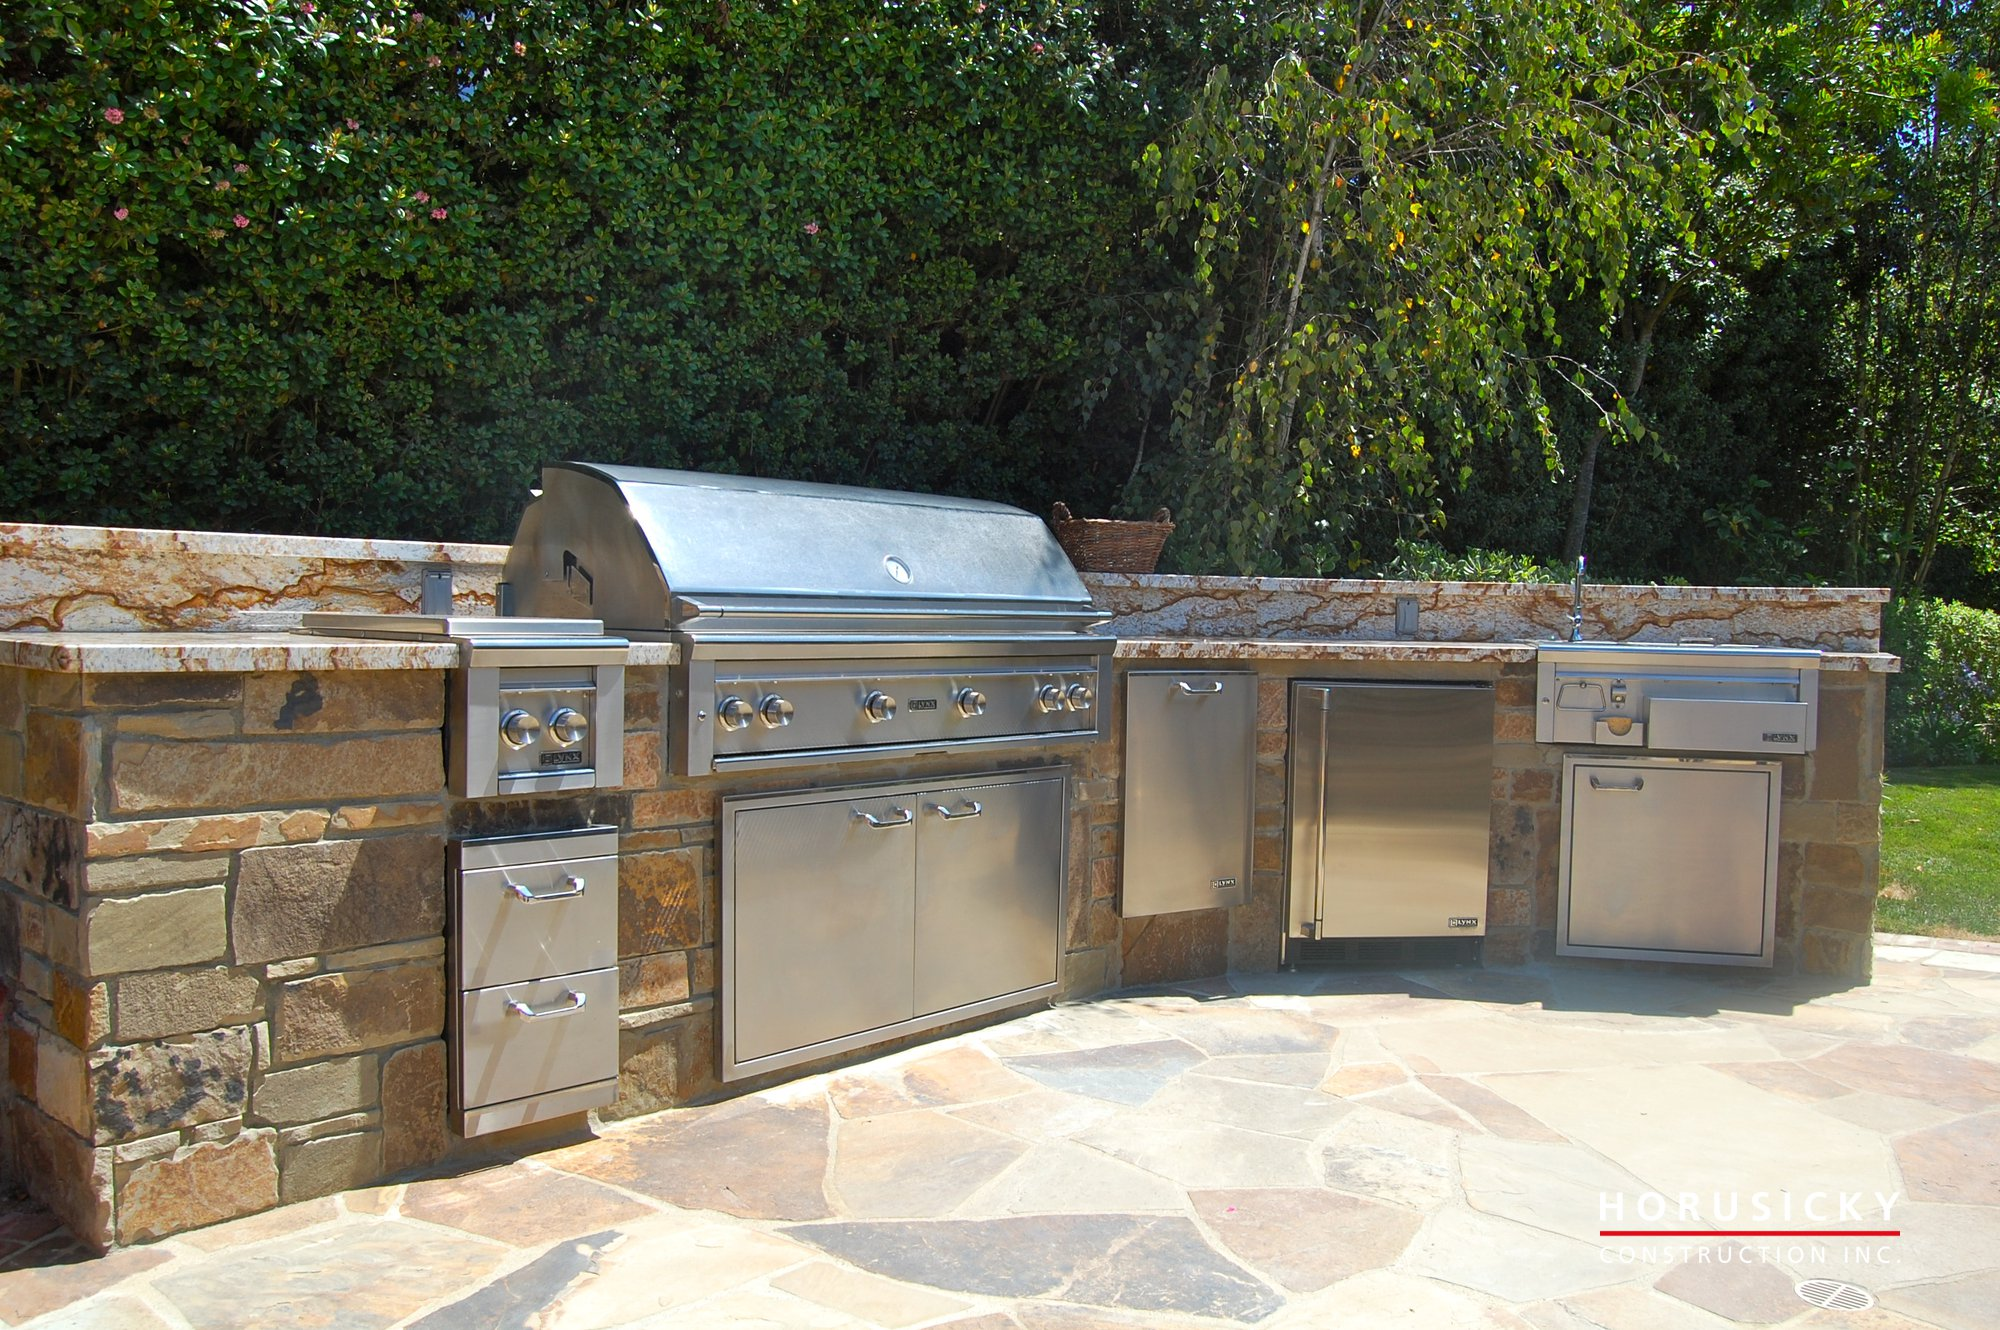 Outdoor kitchens and bbq grills horusicky construction for Backyard barbecues outdoor kitchen